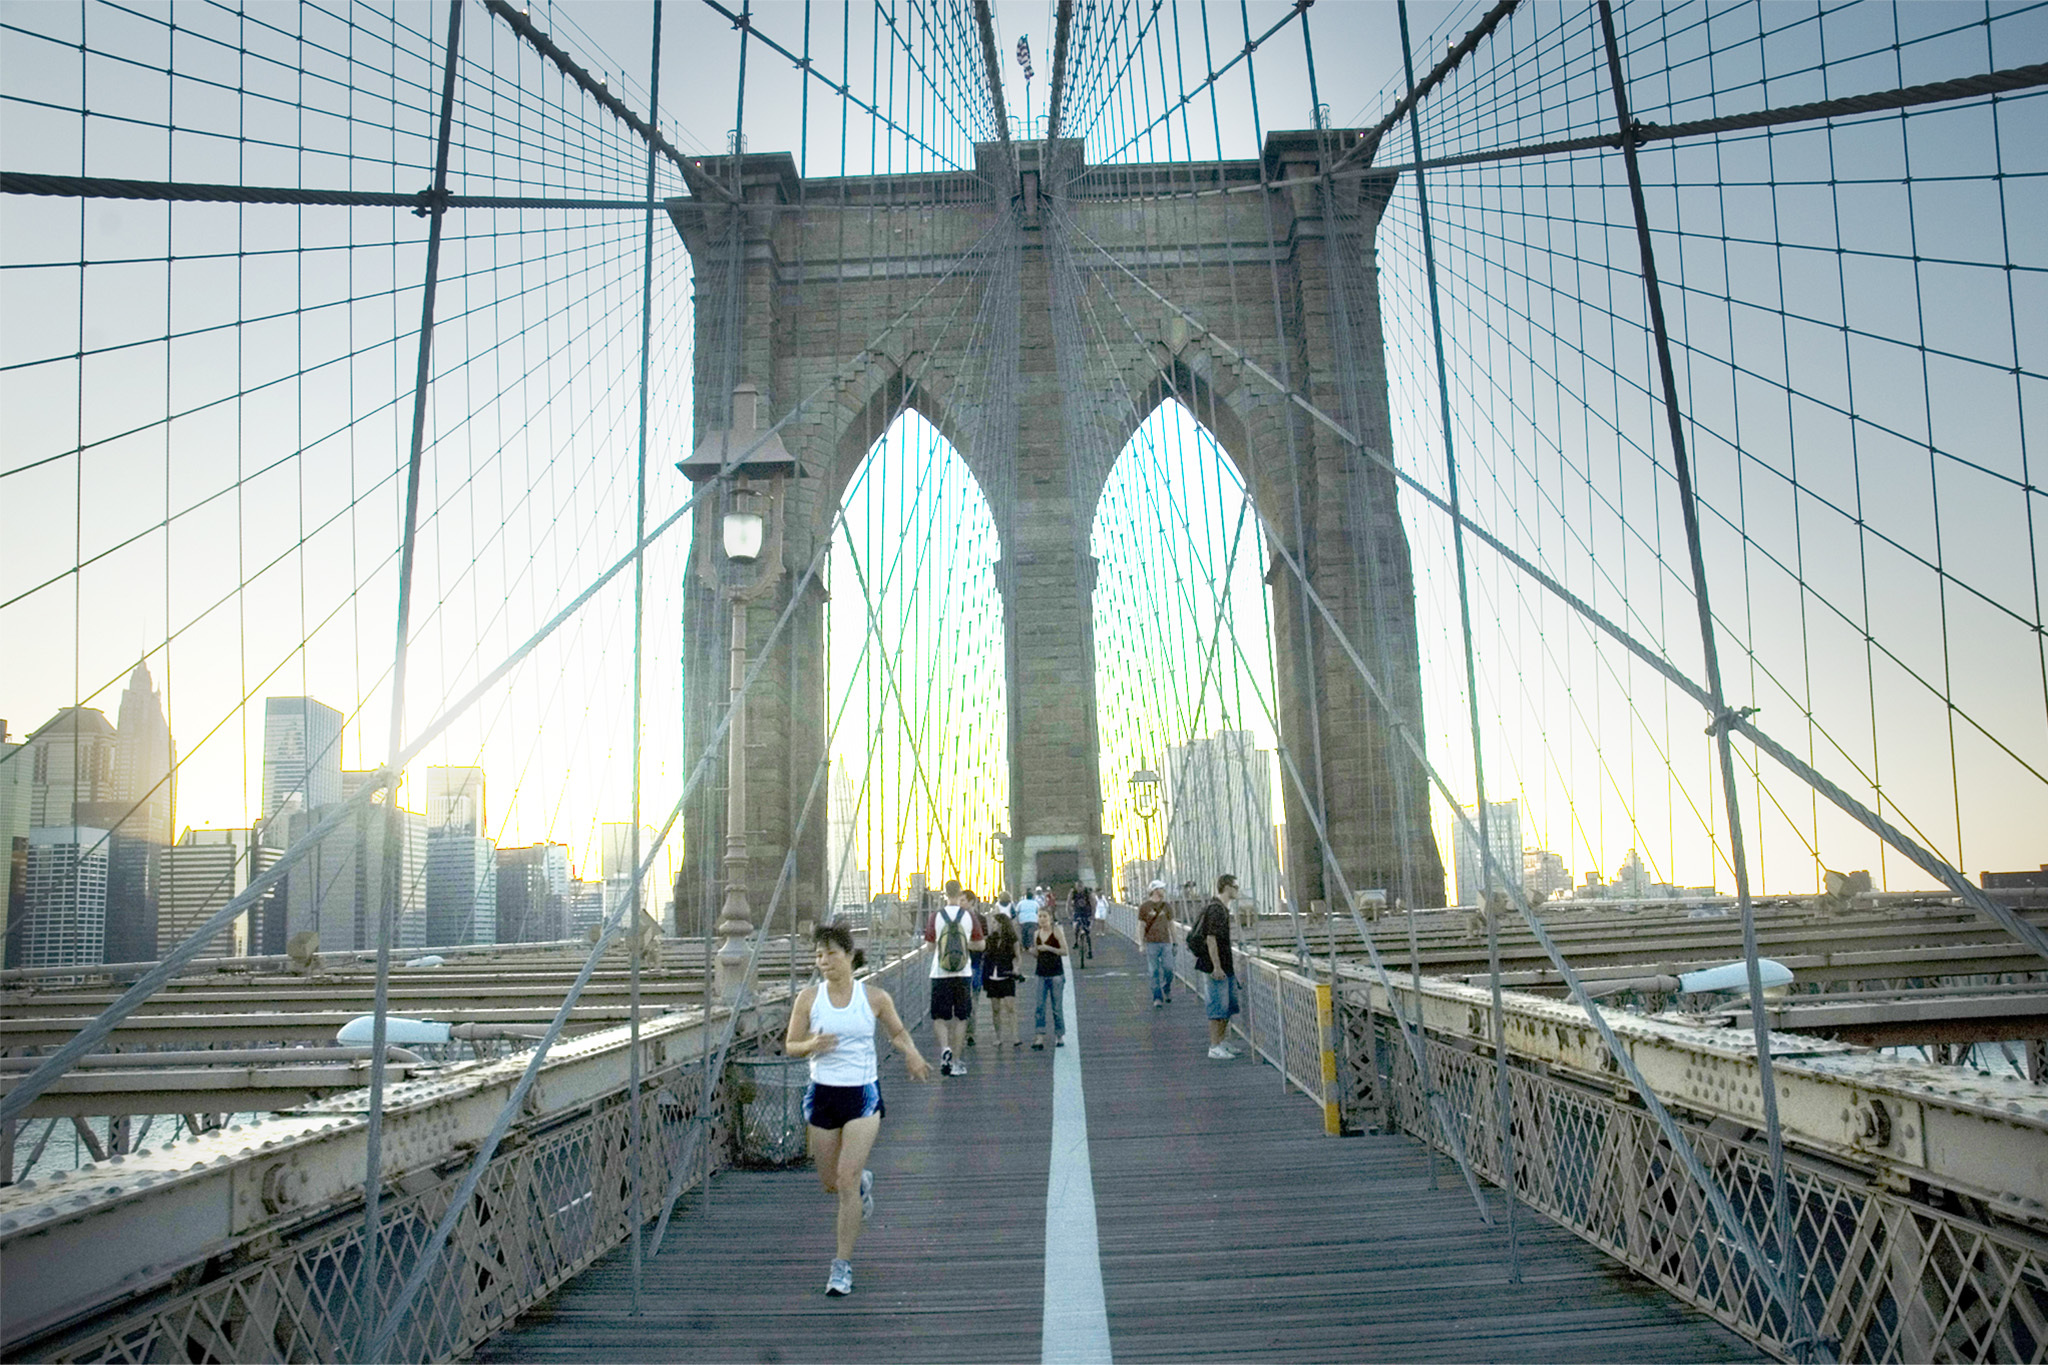 Photos: 50 reasons why NYC is the greatest city in the world (slide show)